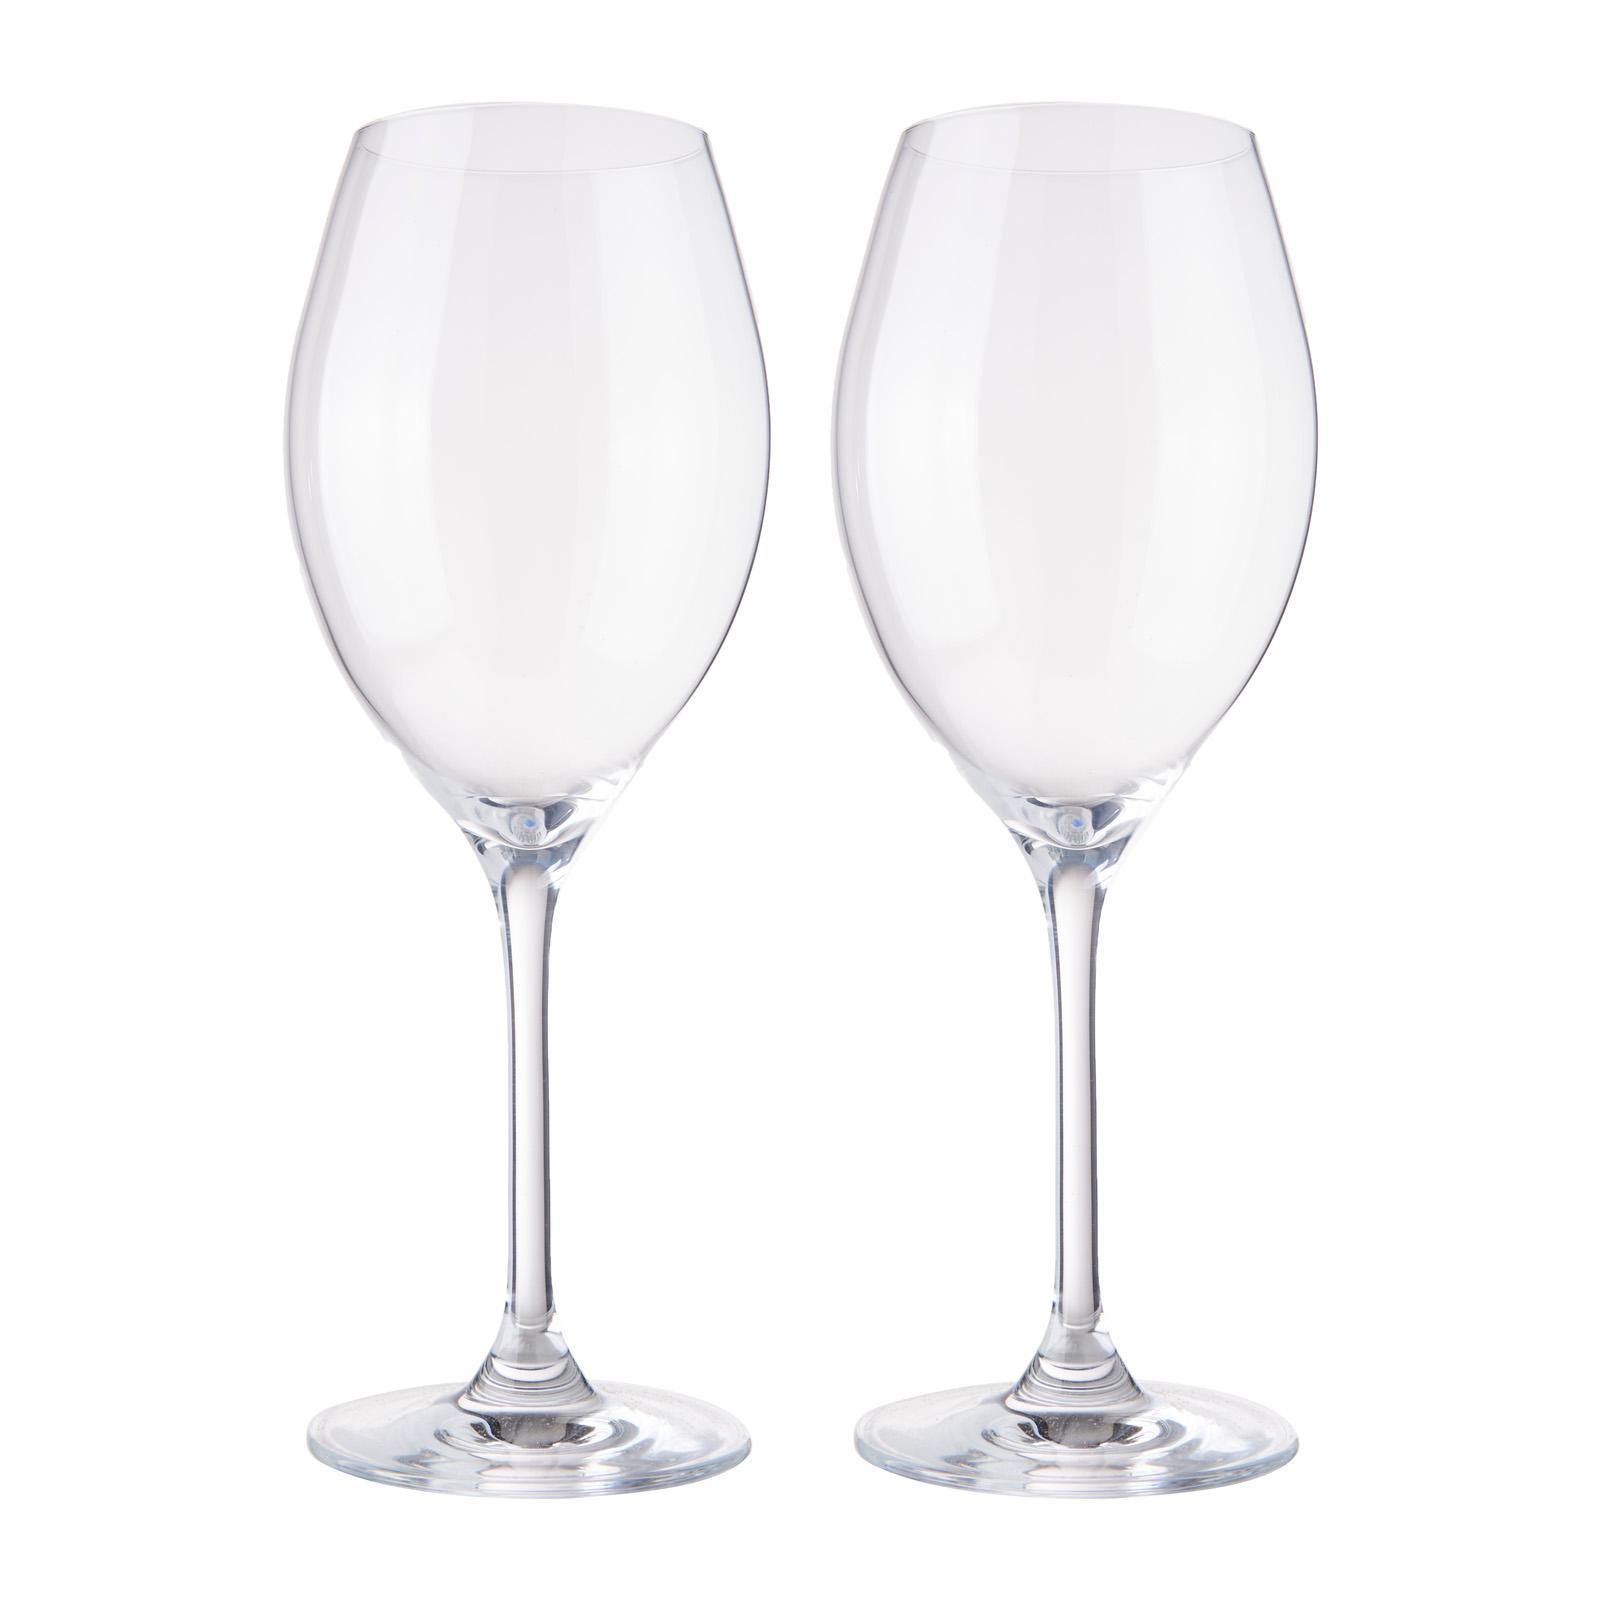 Plumm Crystal Wine Glasses - Vintage WhiteA (2 Glasses) - Le Vigne